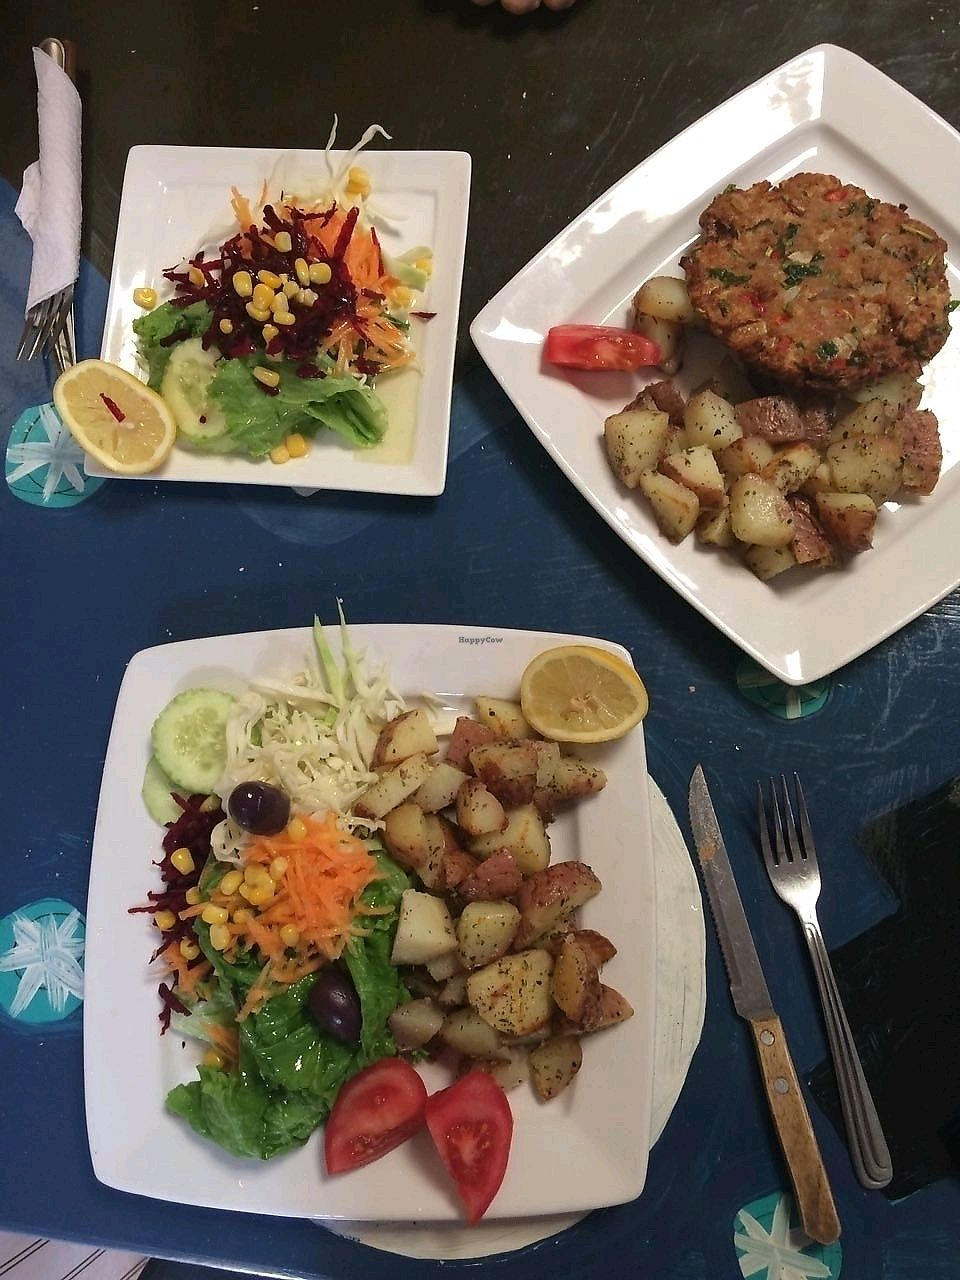 """Photo of Estrella Negra  by <a href=""""/members/profile/schlechteIdee"""">schlechteIdee</a> <br/>Meal salad, menu salad (starter) and soy burger  <br/> October 7, 2017  - <a href='/contact/abuse/image/21442/312847'>Report</a>"""